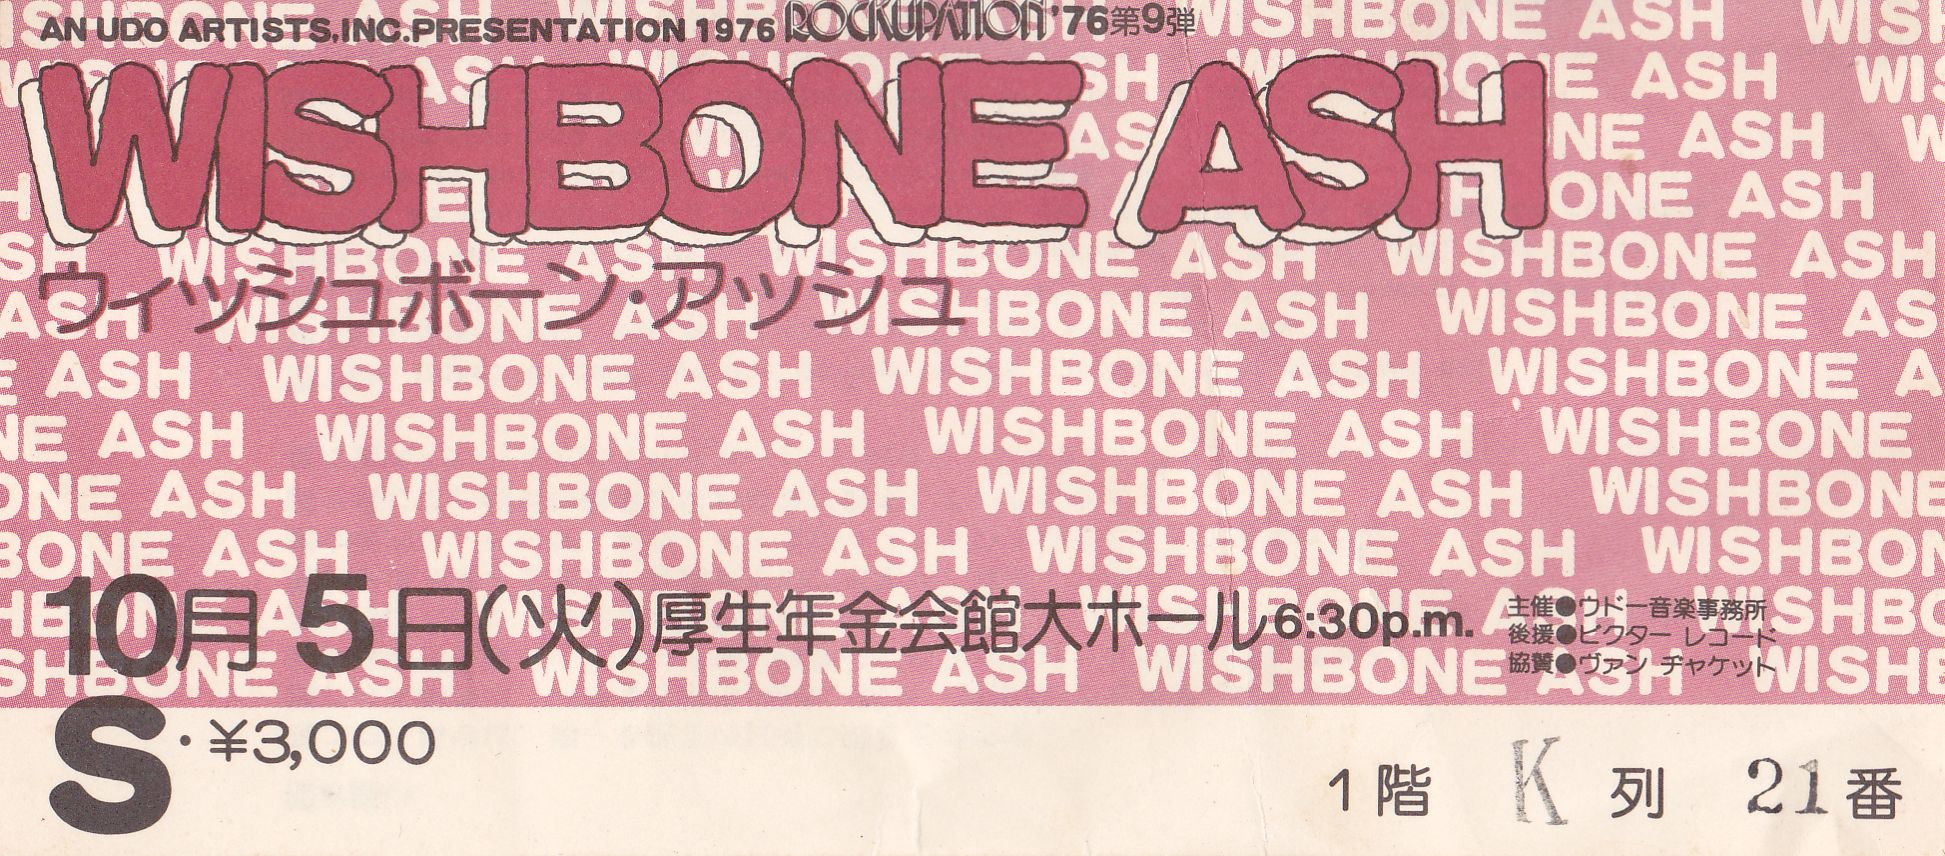 wishboneash76.jpg